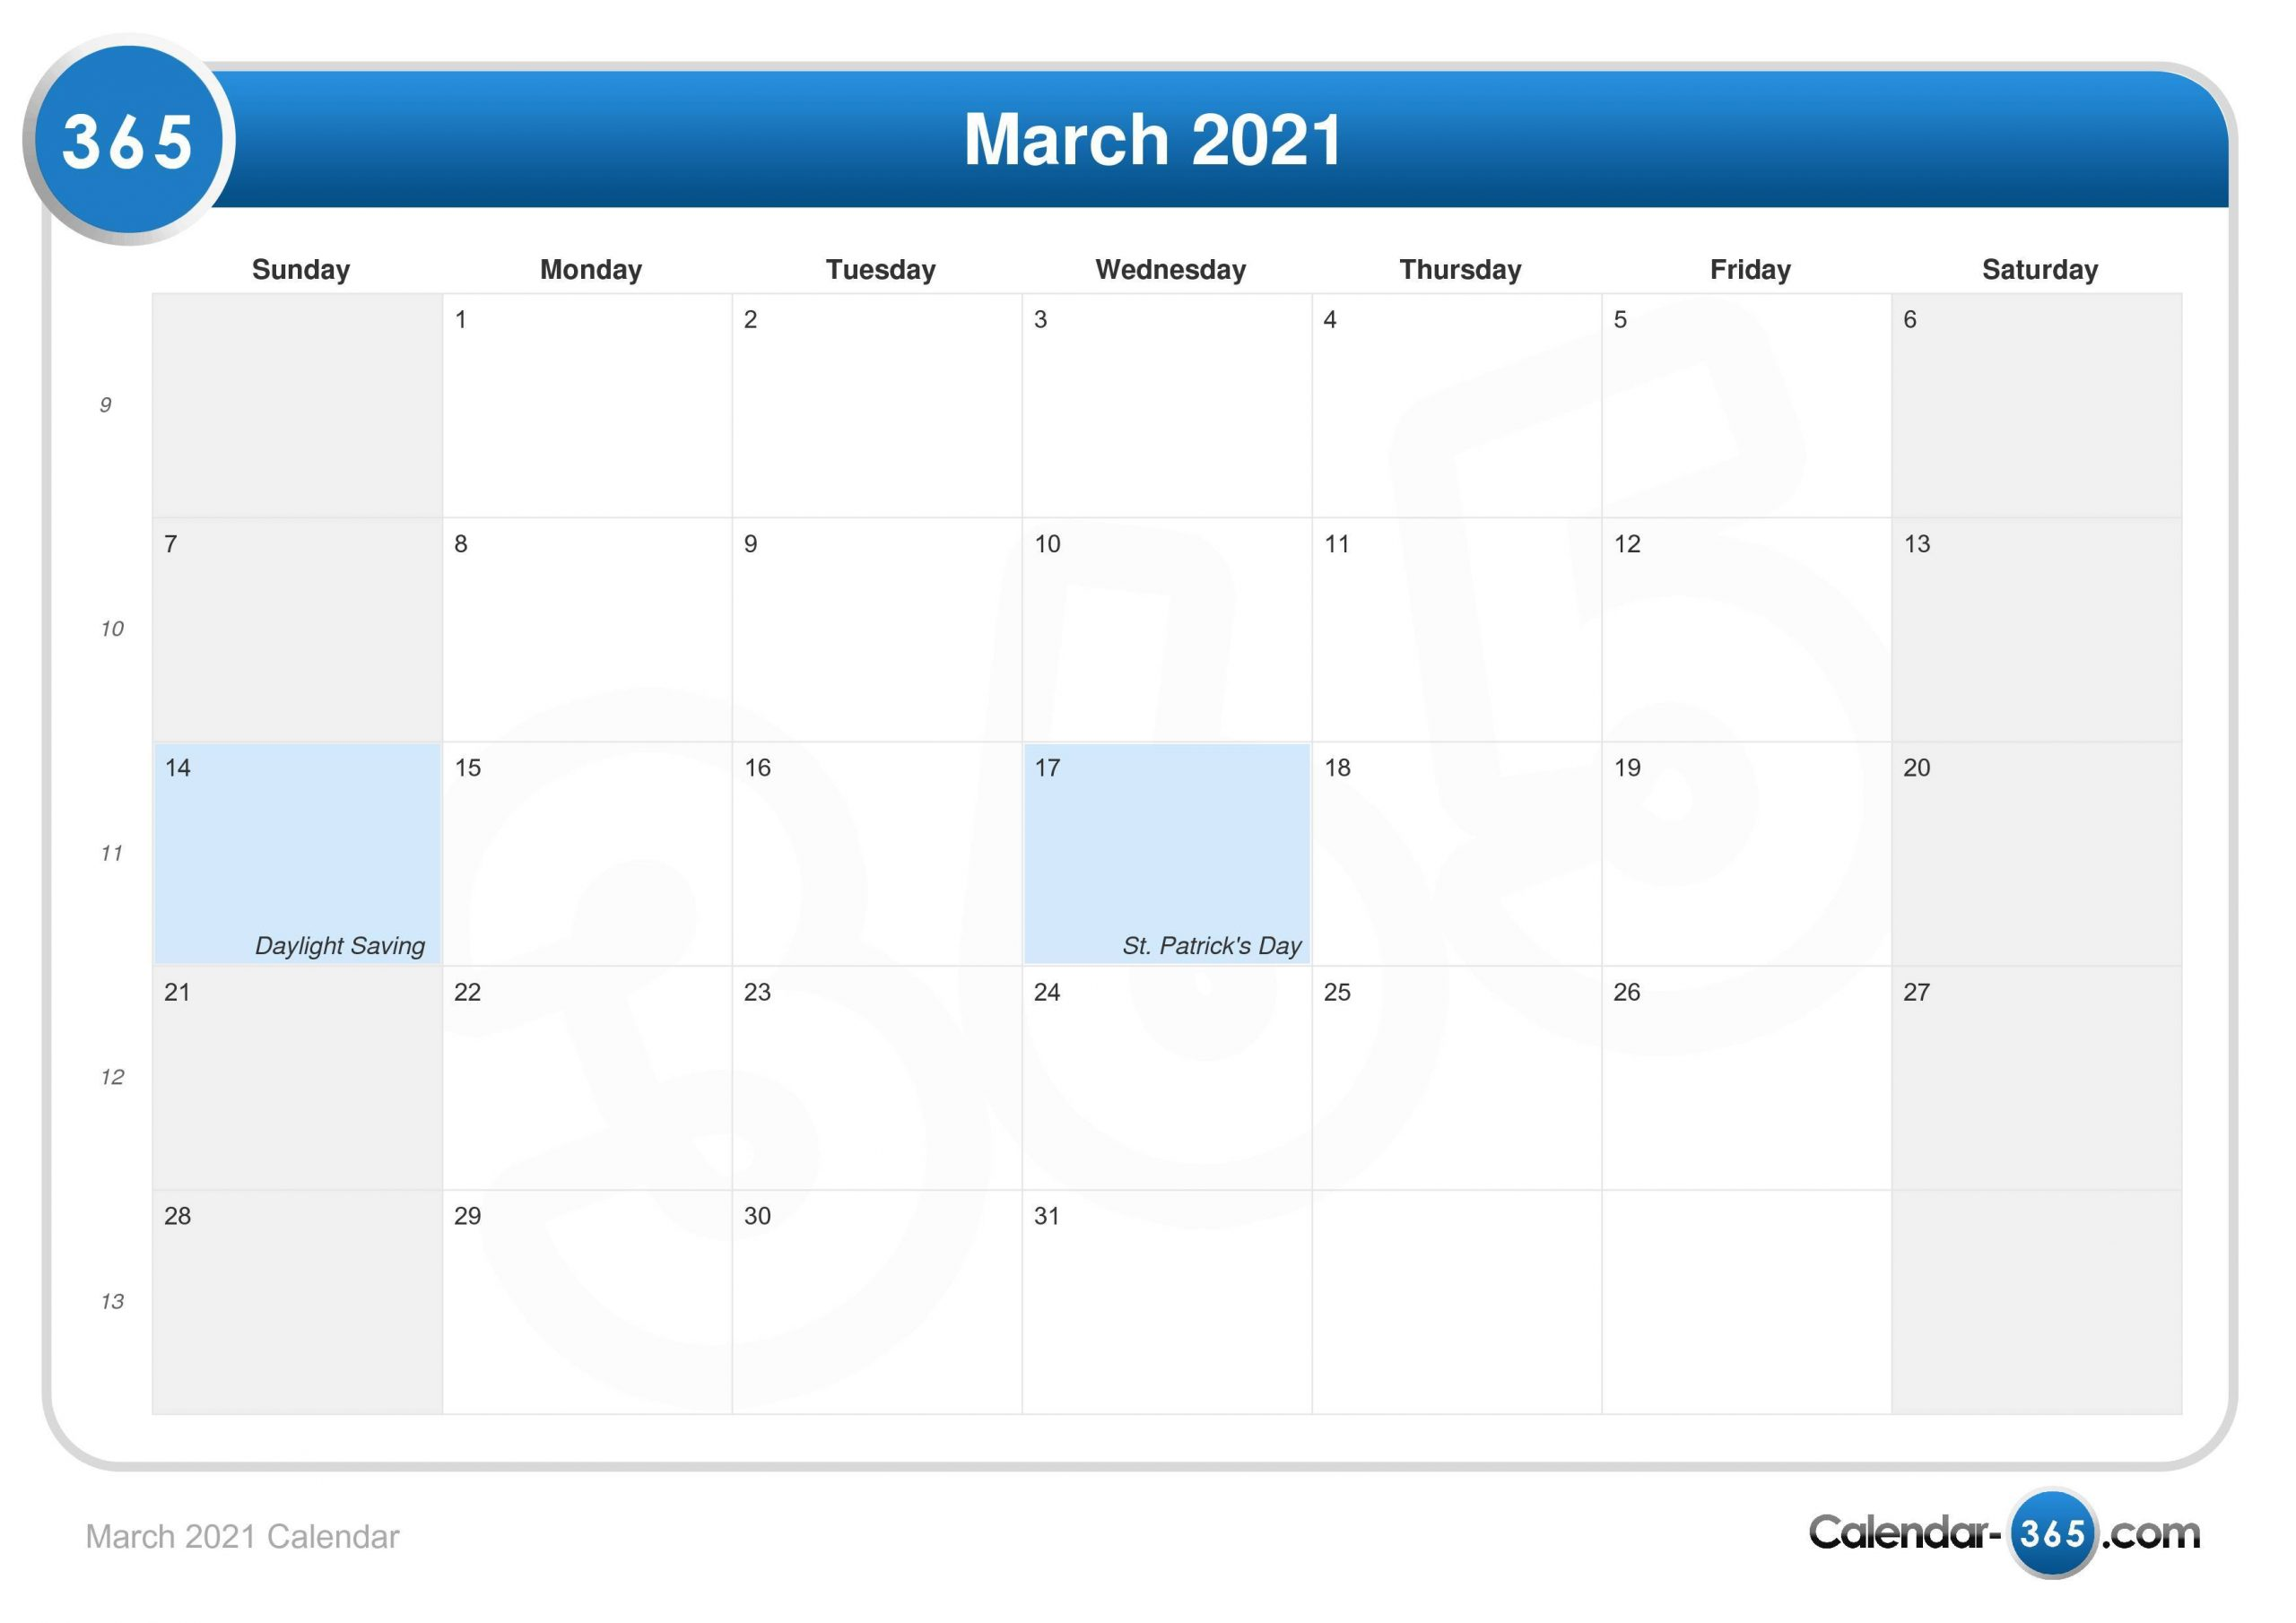 March 2021 Calendar With March 2021 Calendar Images